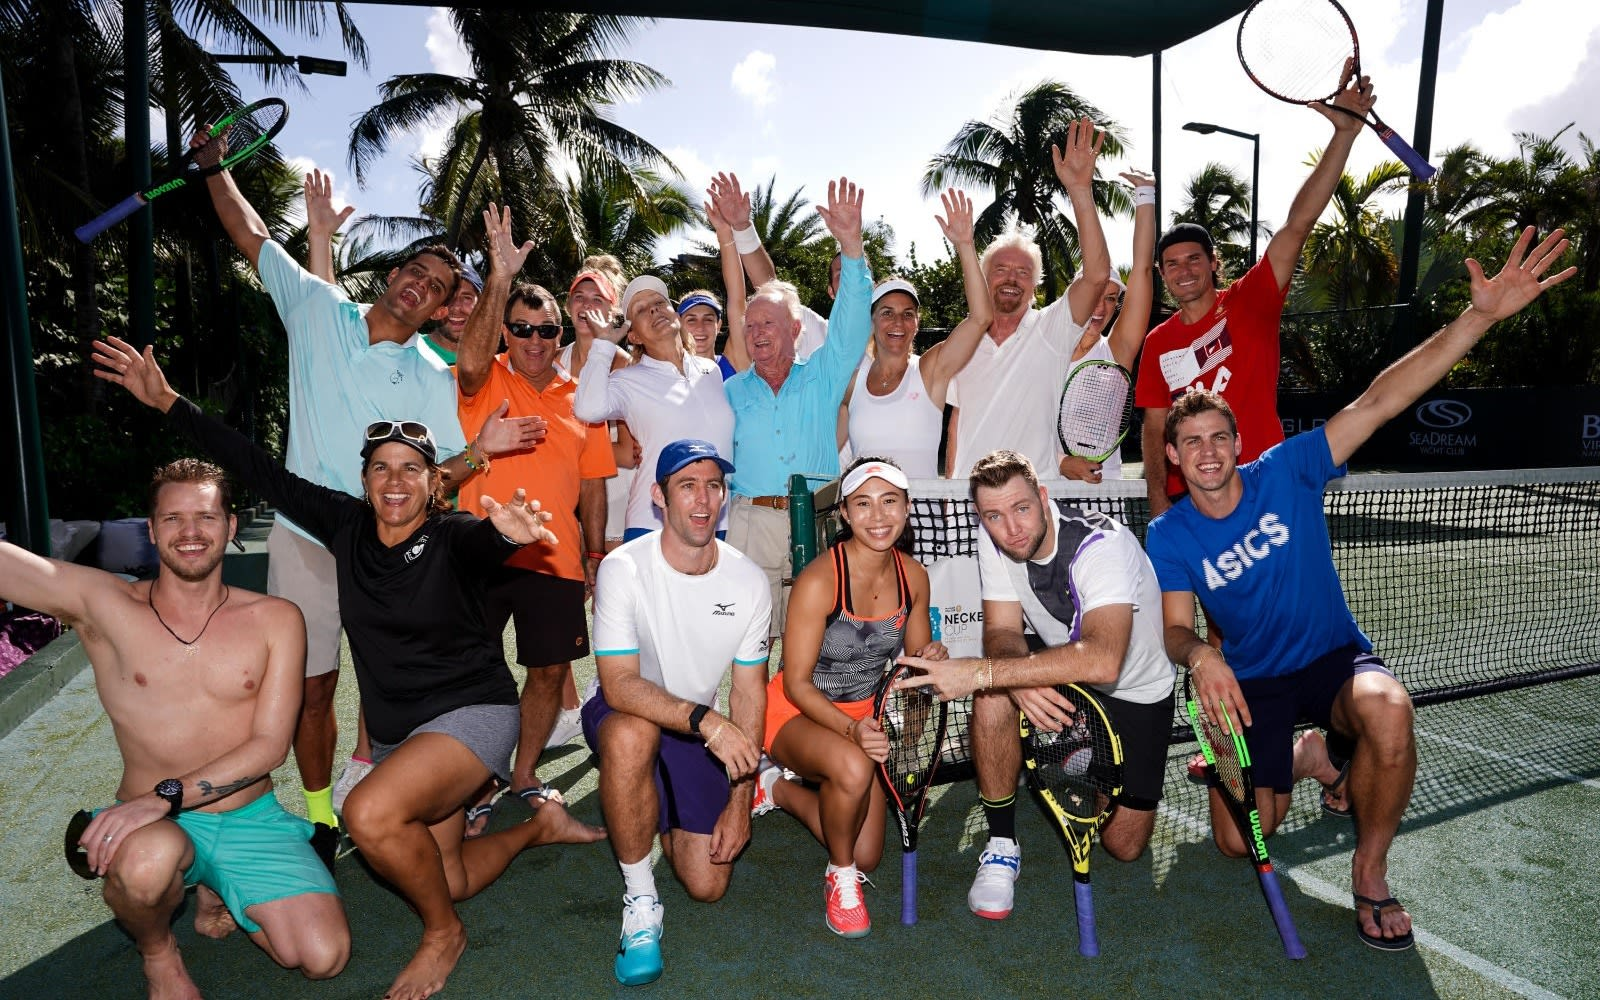 Richard poses with a group of tennis players at the Necker Cup